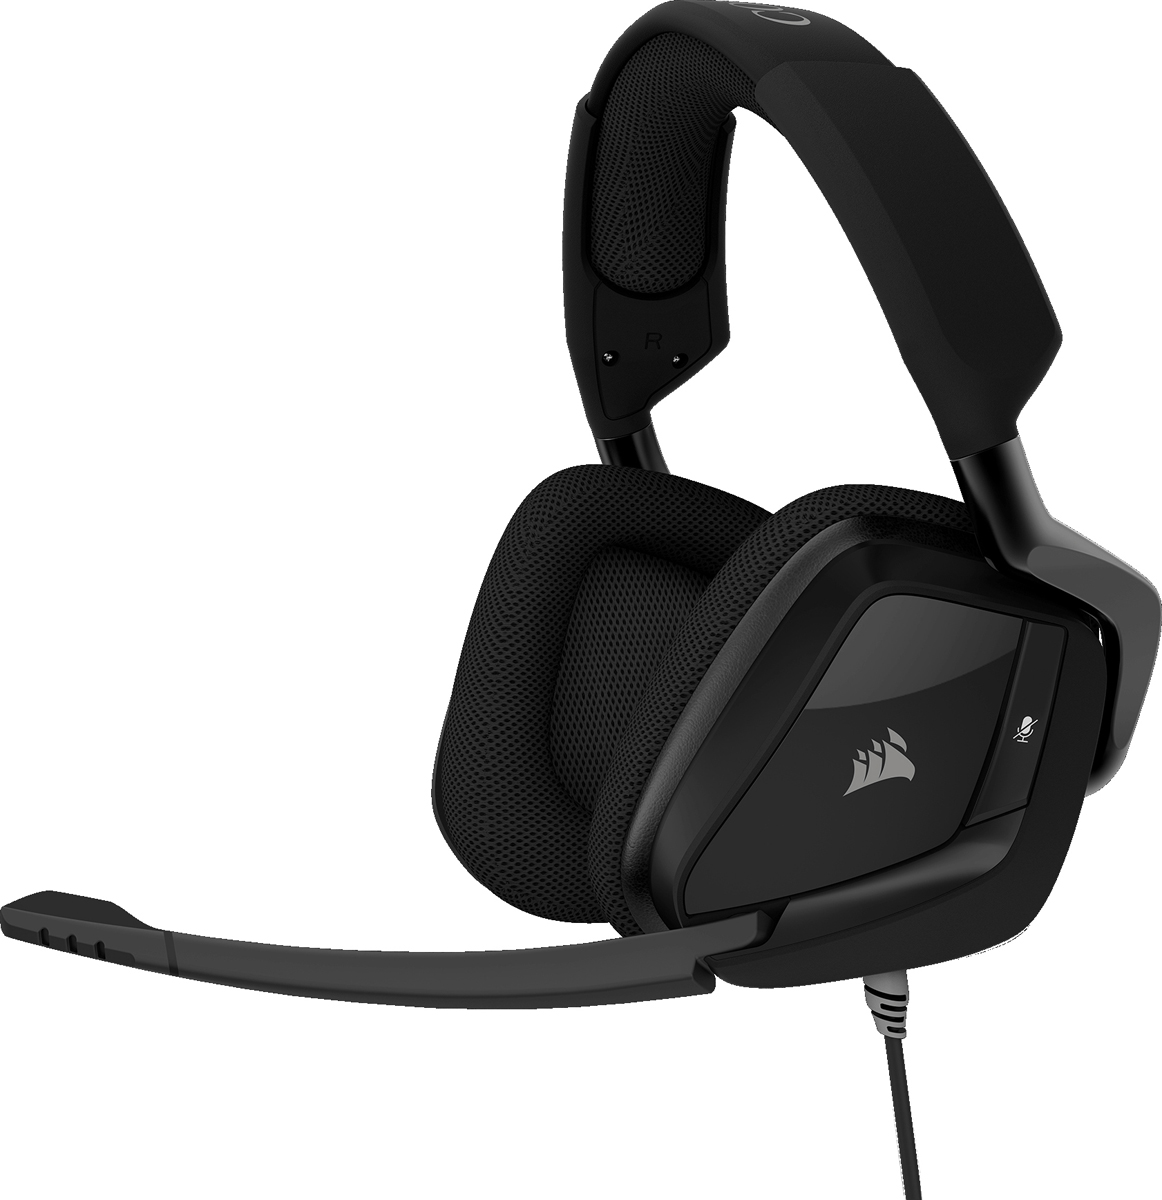 Corsair Gaming Void Pro Surround, Carbon игровая гарнитура avid dolby surround tools